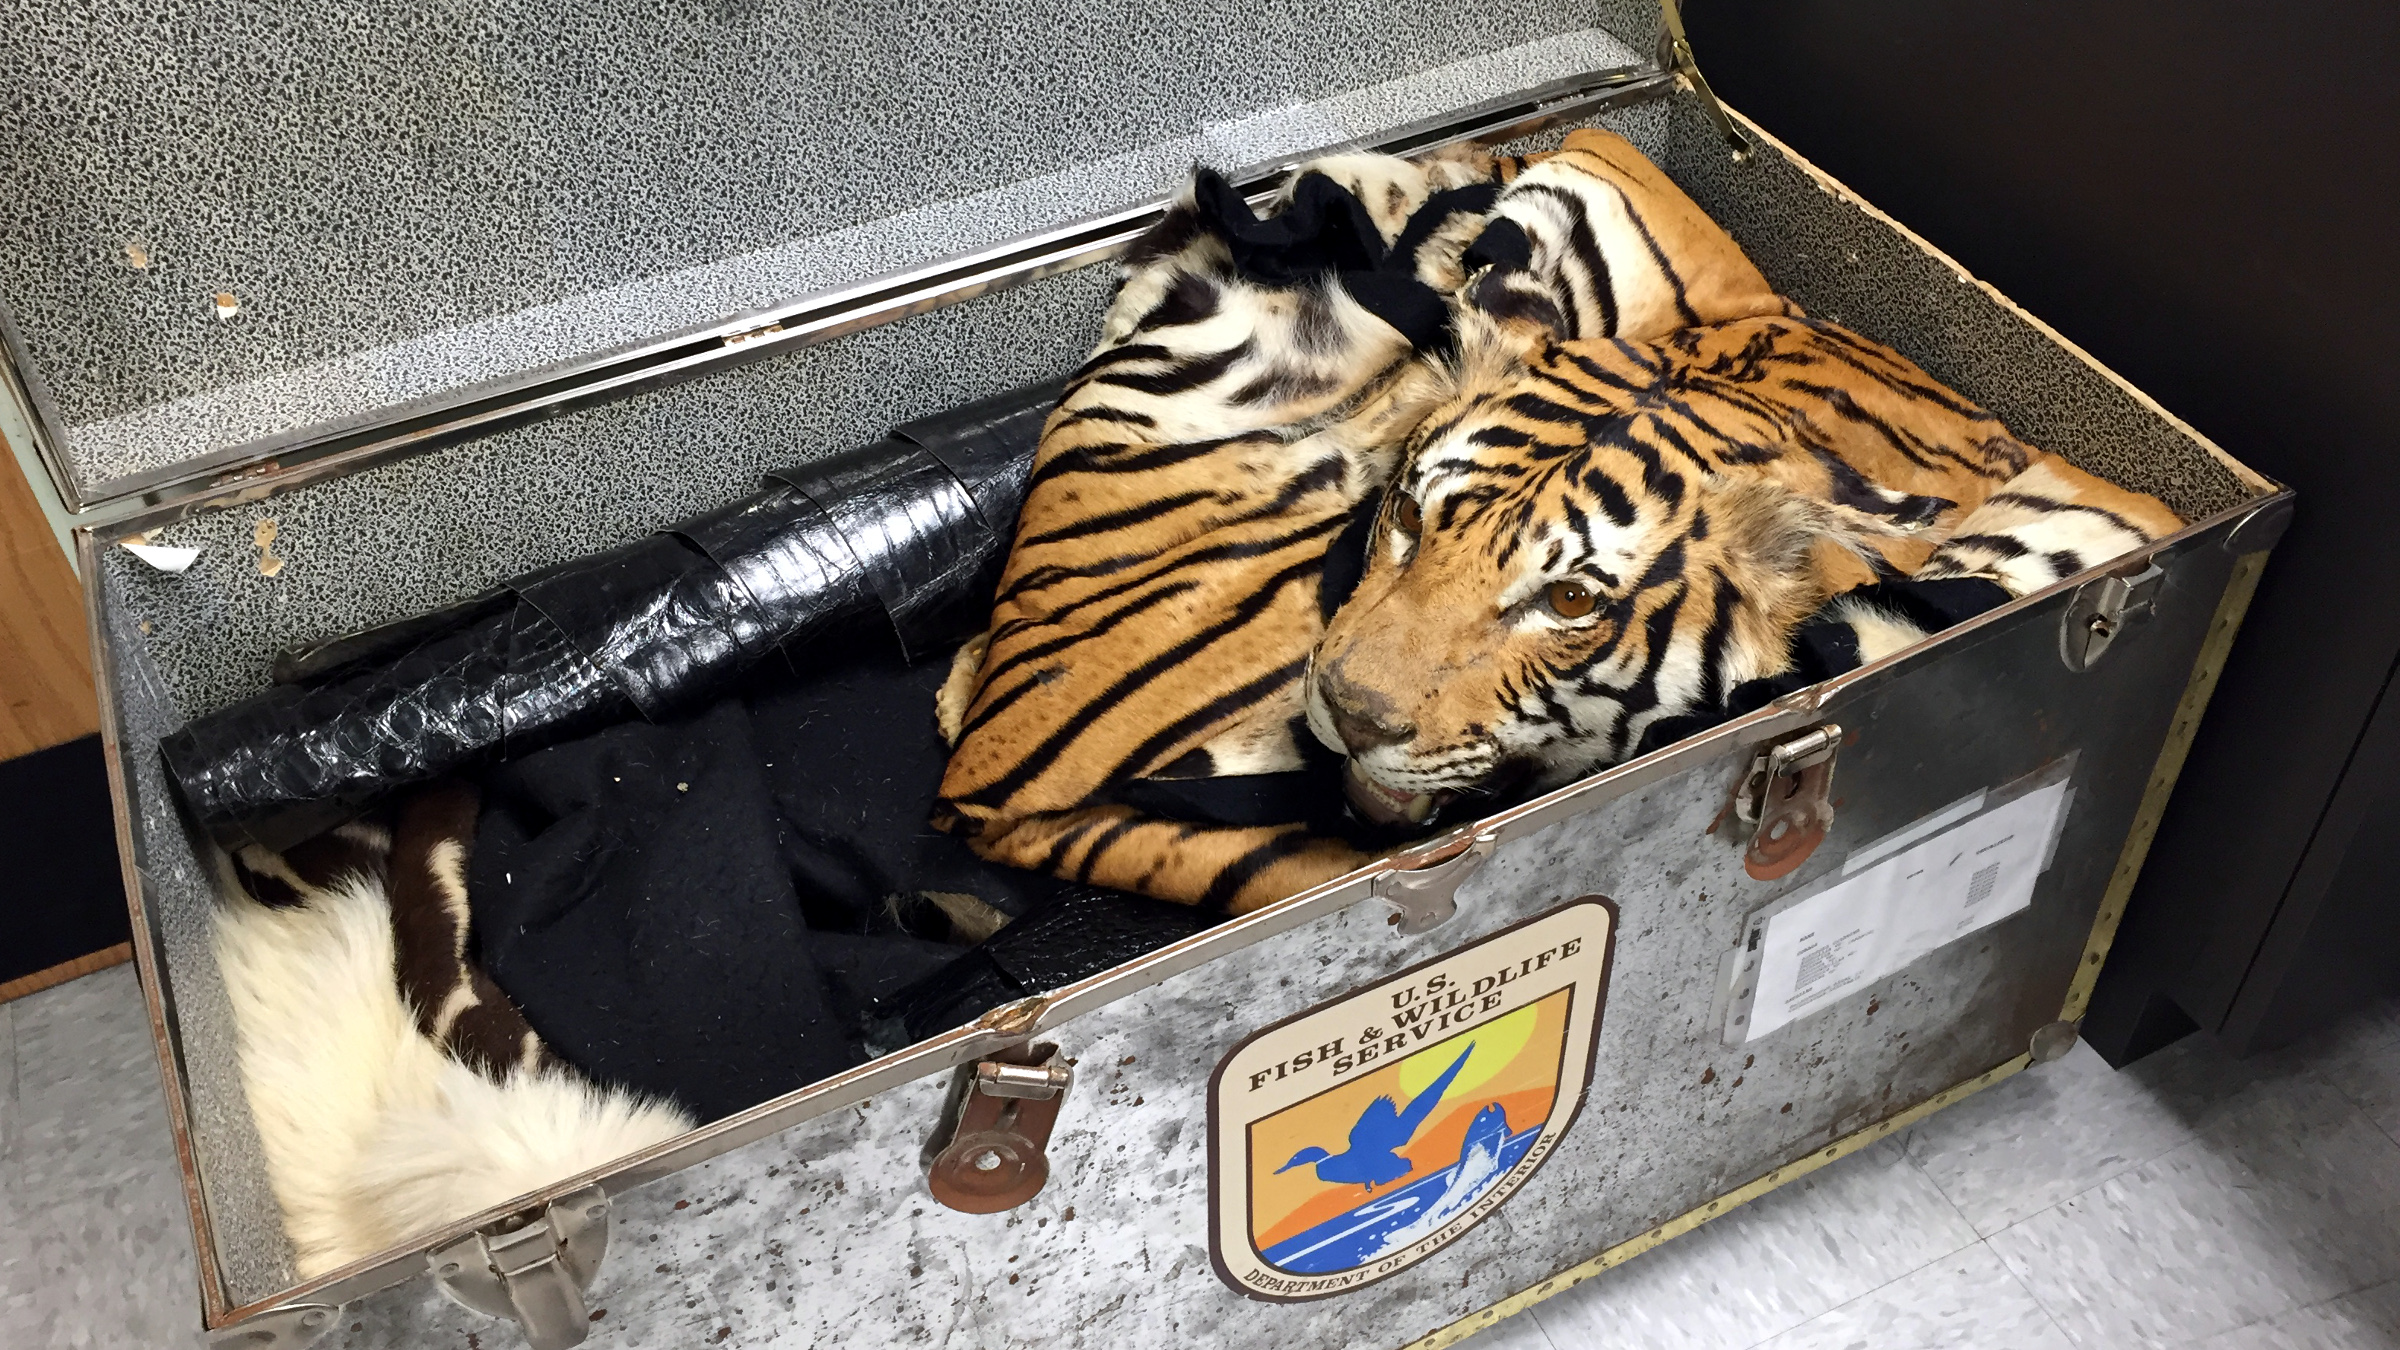 A crate of animal skins.